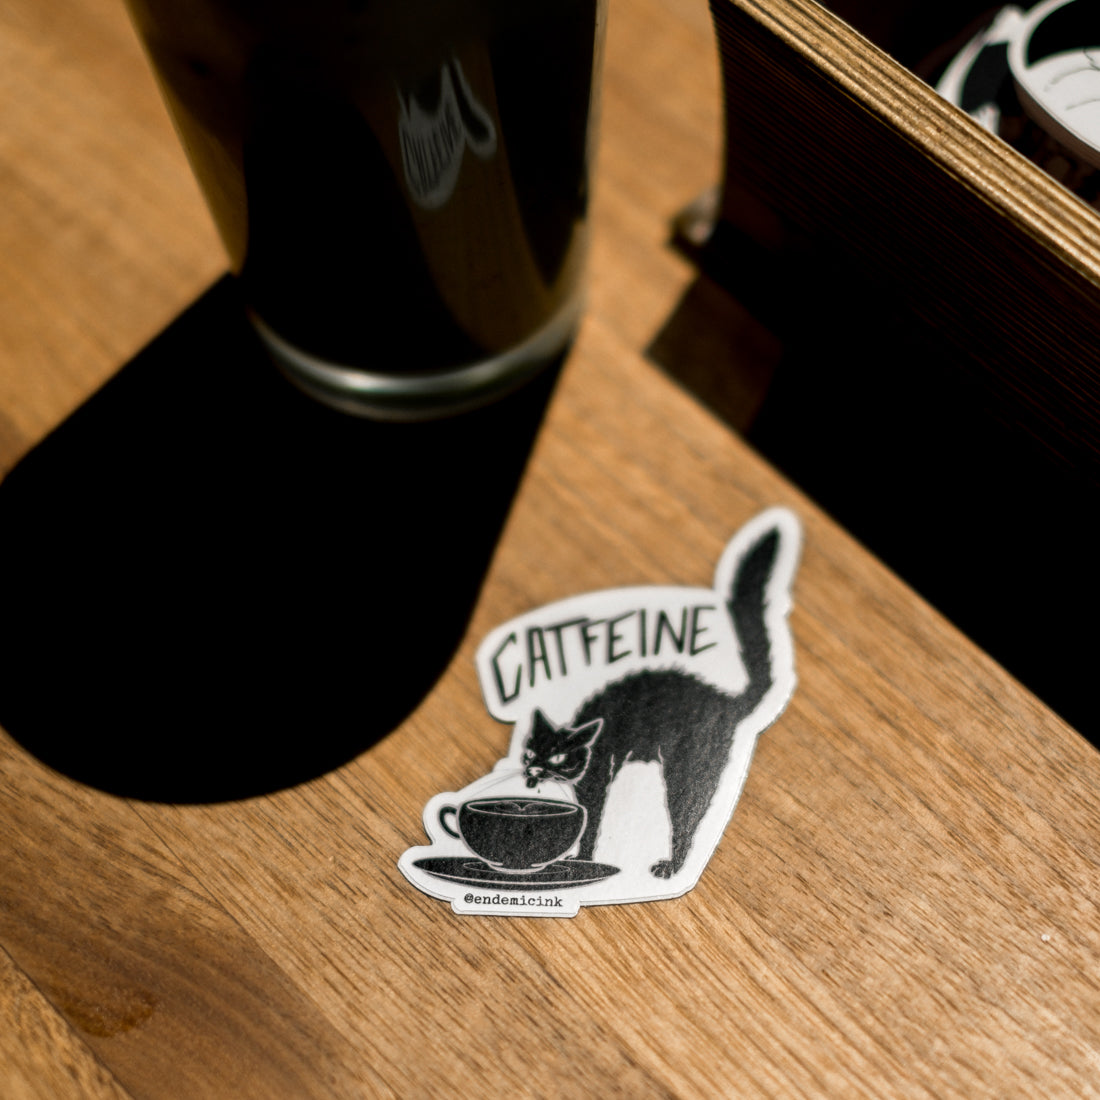 Endemic Ink Catfeine Sticker